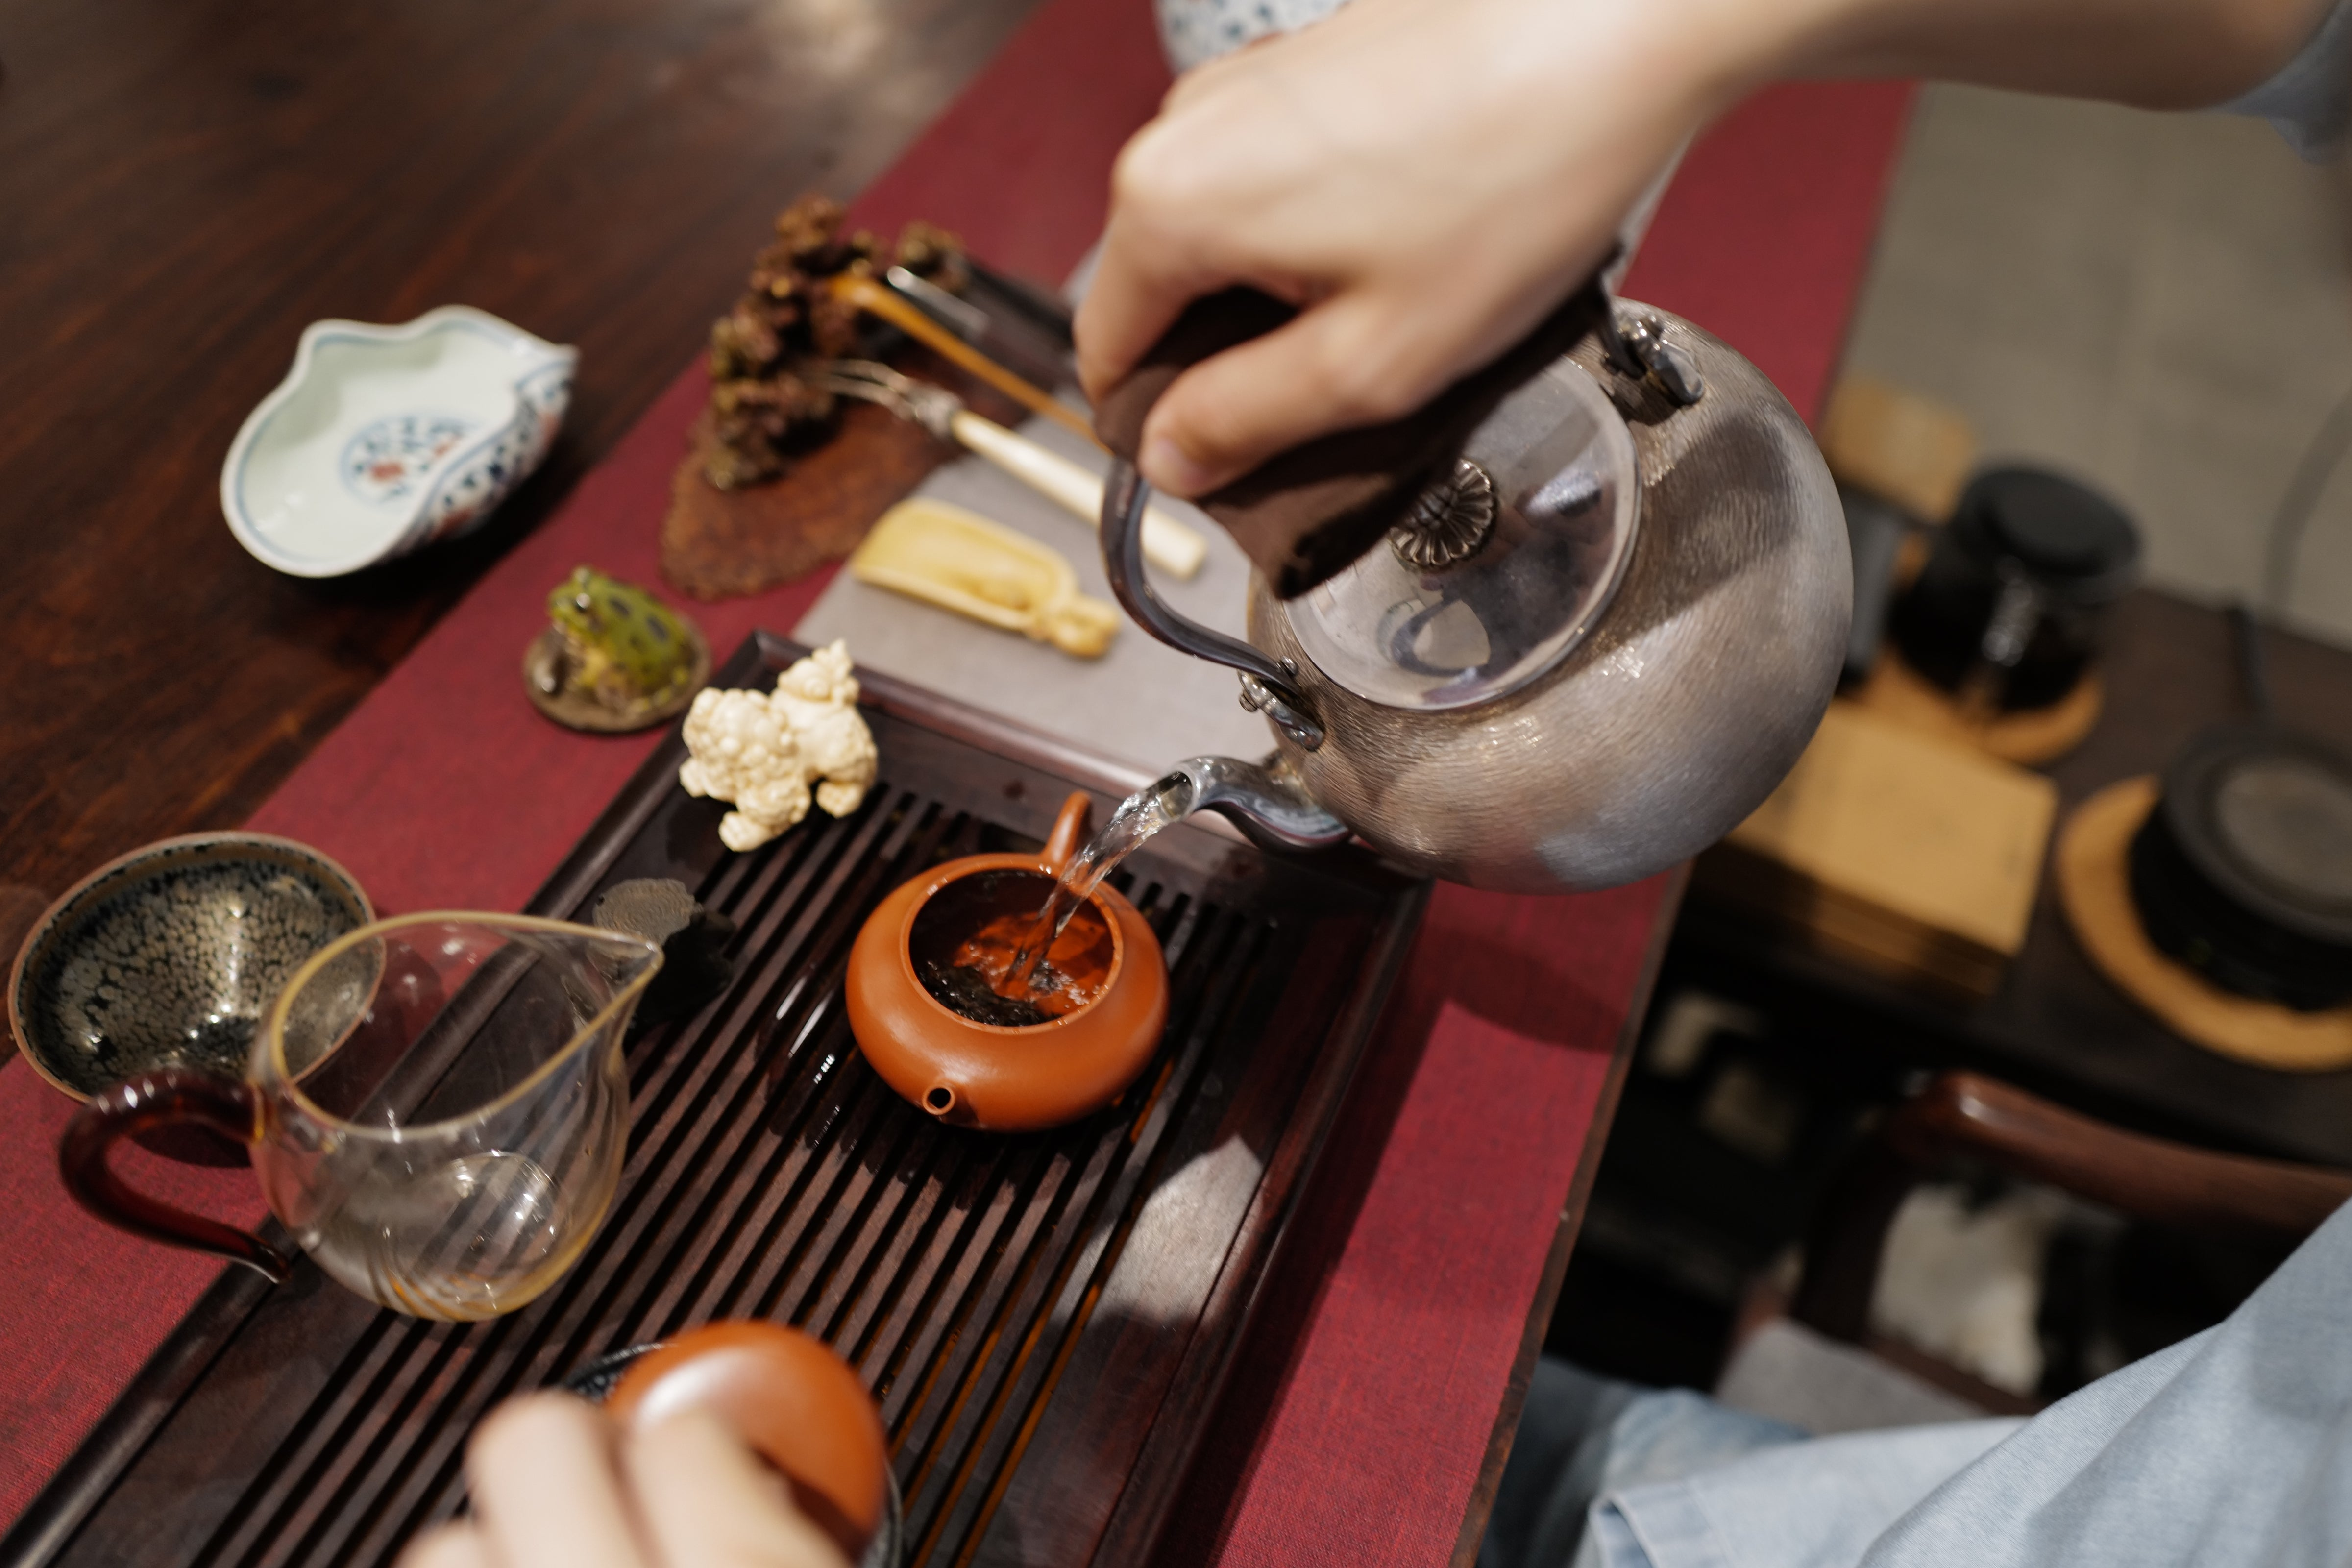 Chinese Tea Ceremony & Tasting 茶道 · 品鉴